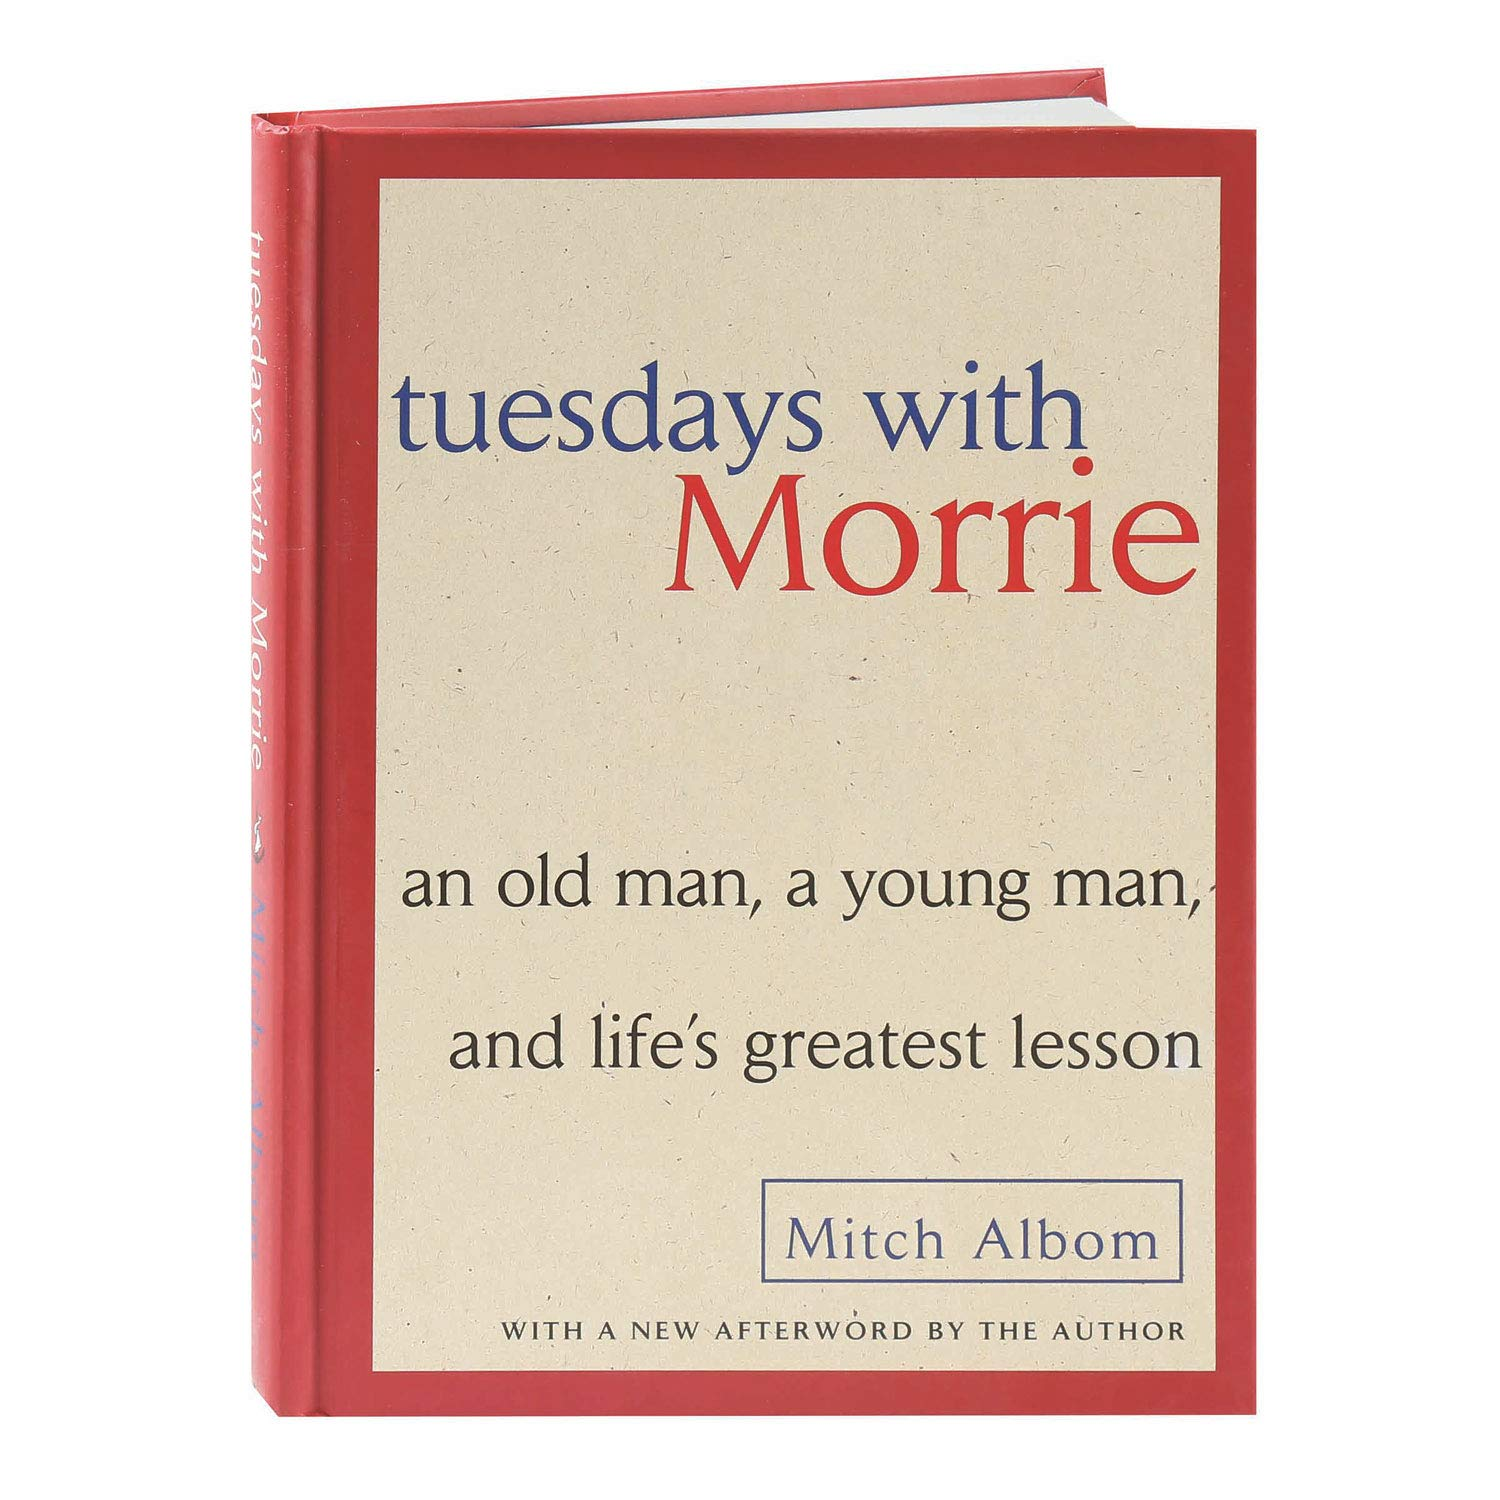 Tuesdays with Morrie Publisher: Doubleday; 1st (first) edition Text Only